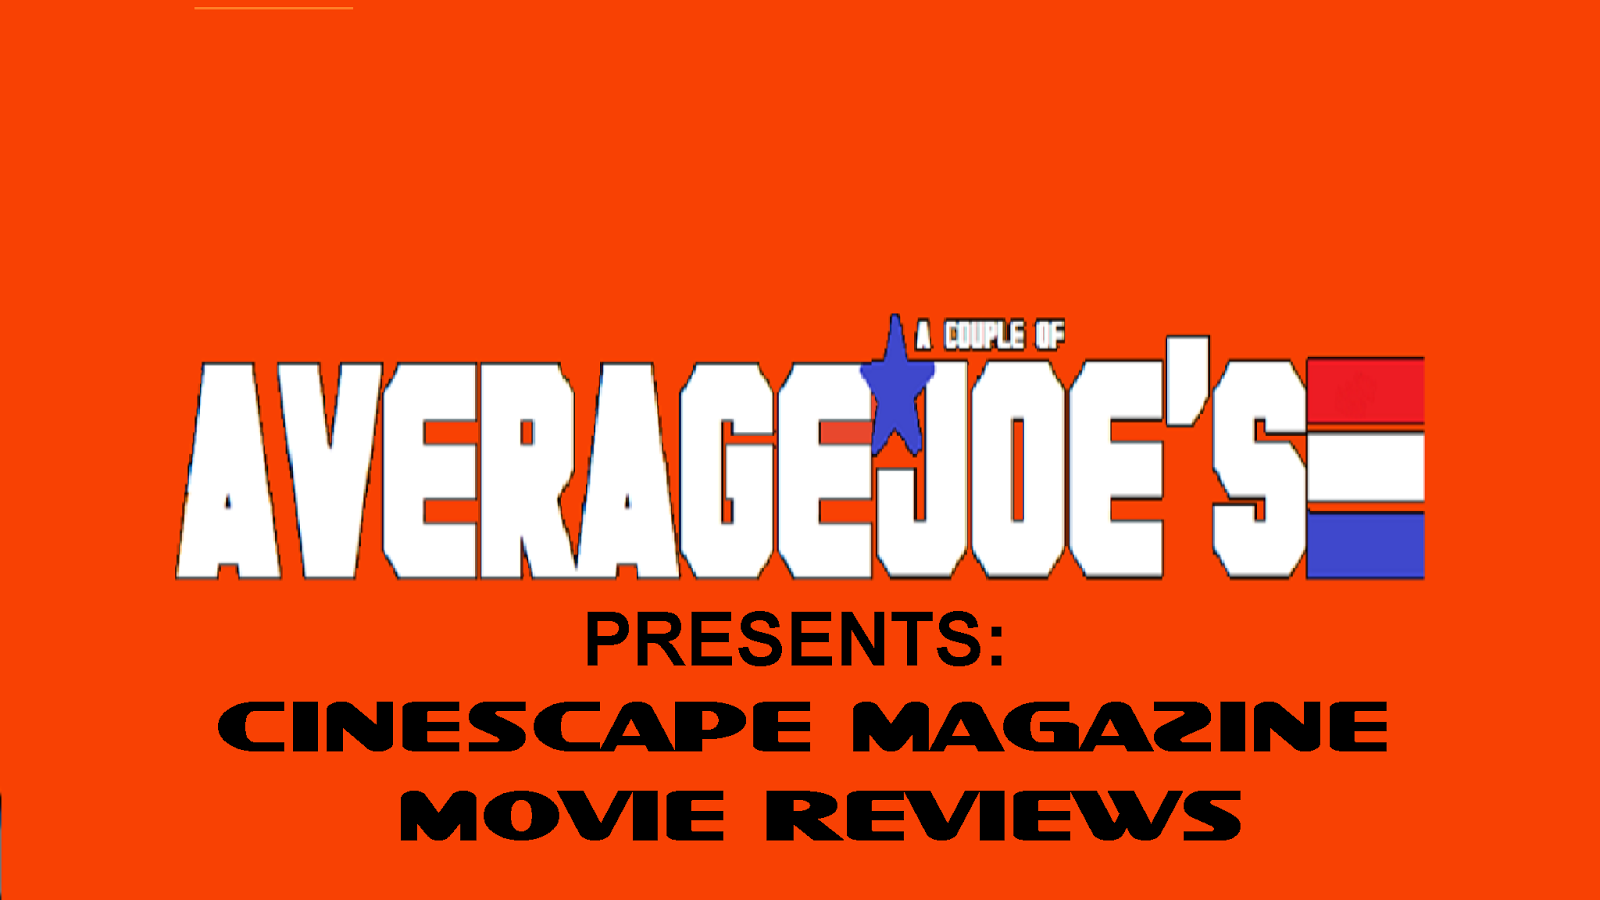 A Couple Of Average Joe's Presents: Cinescape Magazine